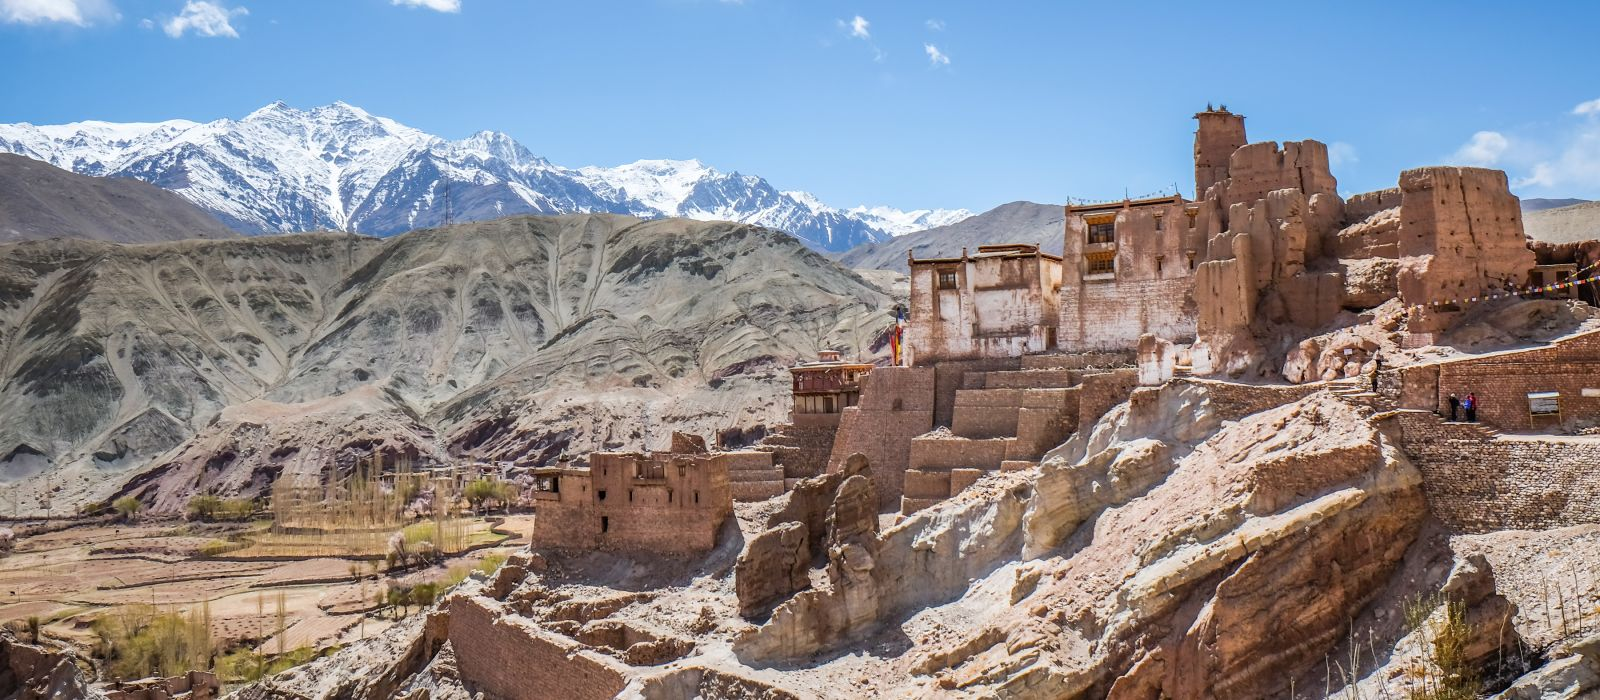 Basgo Gompa or The Crying skull near Alchi monastery and Likir Gompa inLeh Ladakh , Jammu and Kashmir India